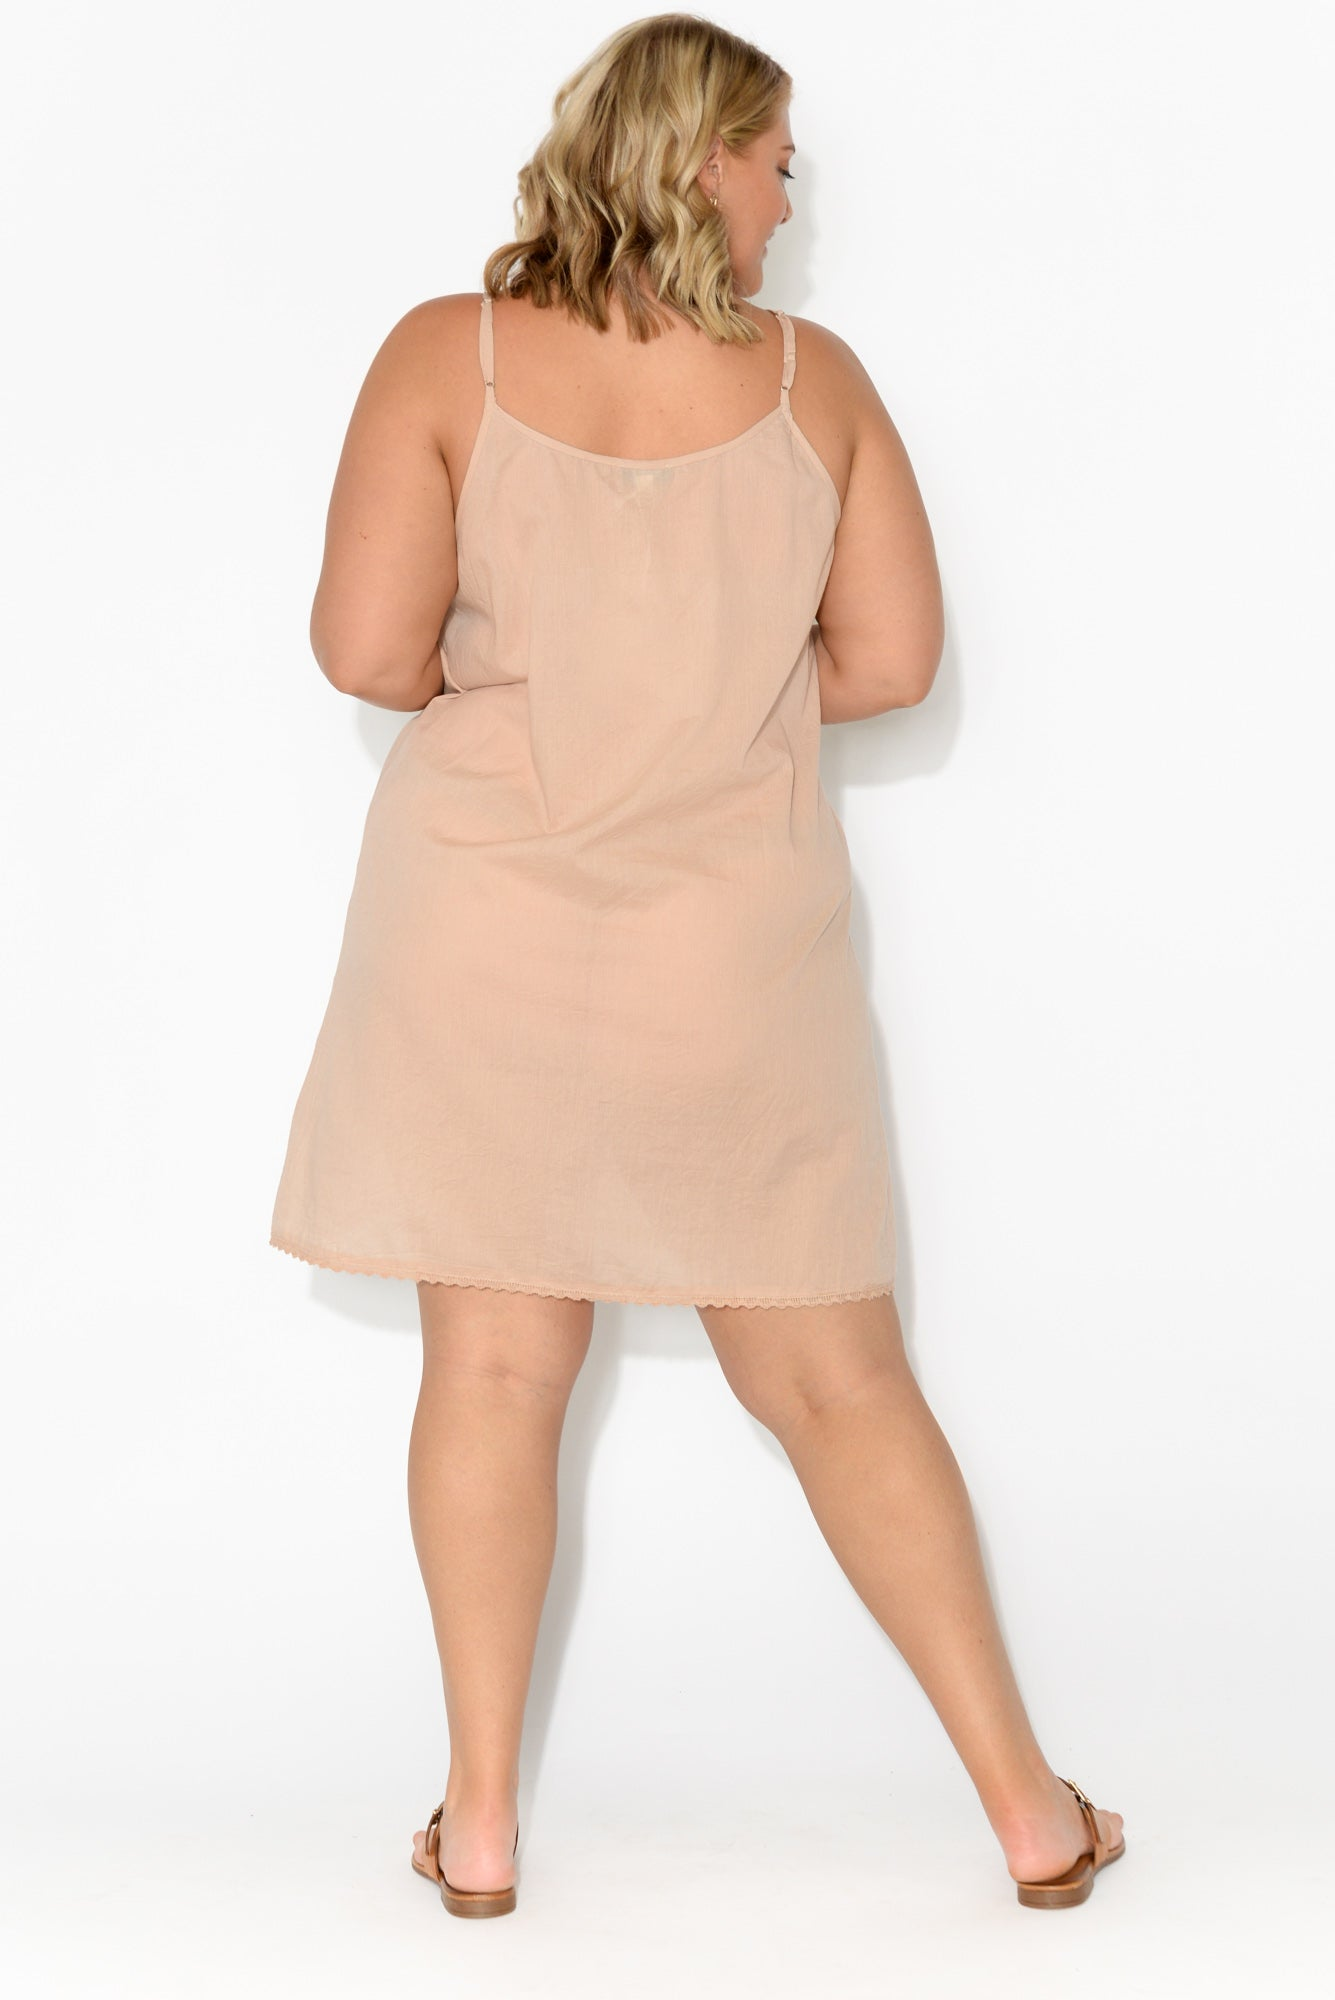 Nude Organic Cotton Reversible Slip Dress